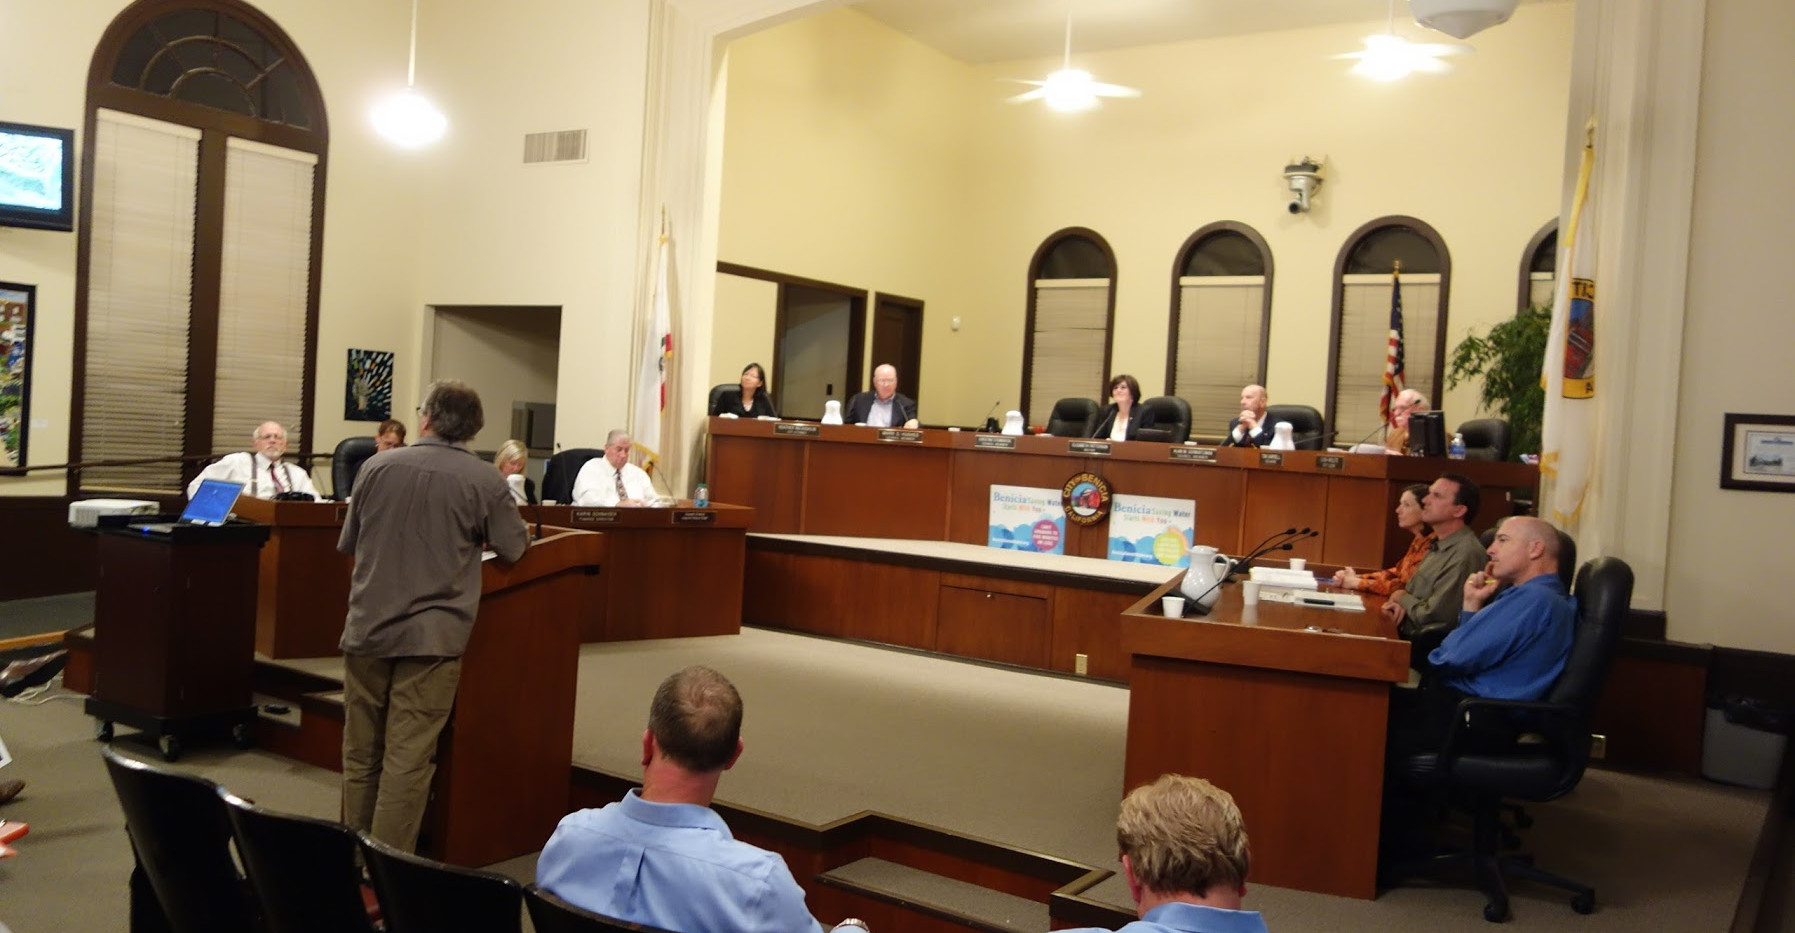 City council meeting presenting art and bioremediation ideas. The political process was an important part of the piece.